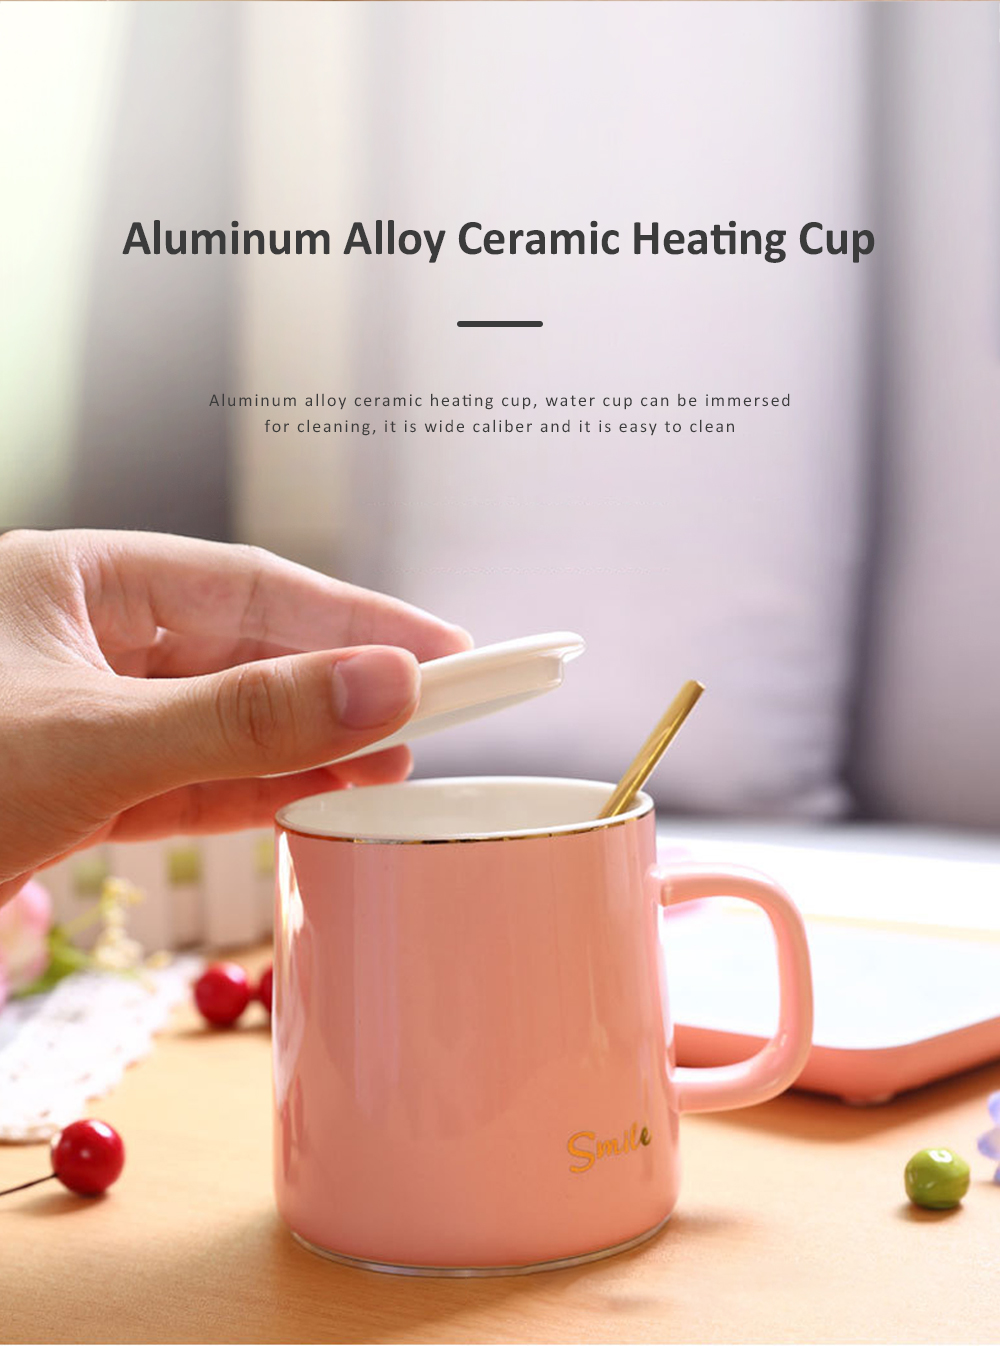 55 Degree Intelligent Thermostat Coaster Smart Insulation Office Heating Mat Warmer Milk Warmer Cup Gift With Delicate Box Valentine Gift 7